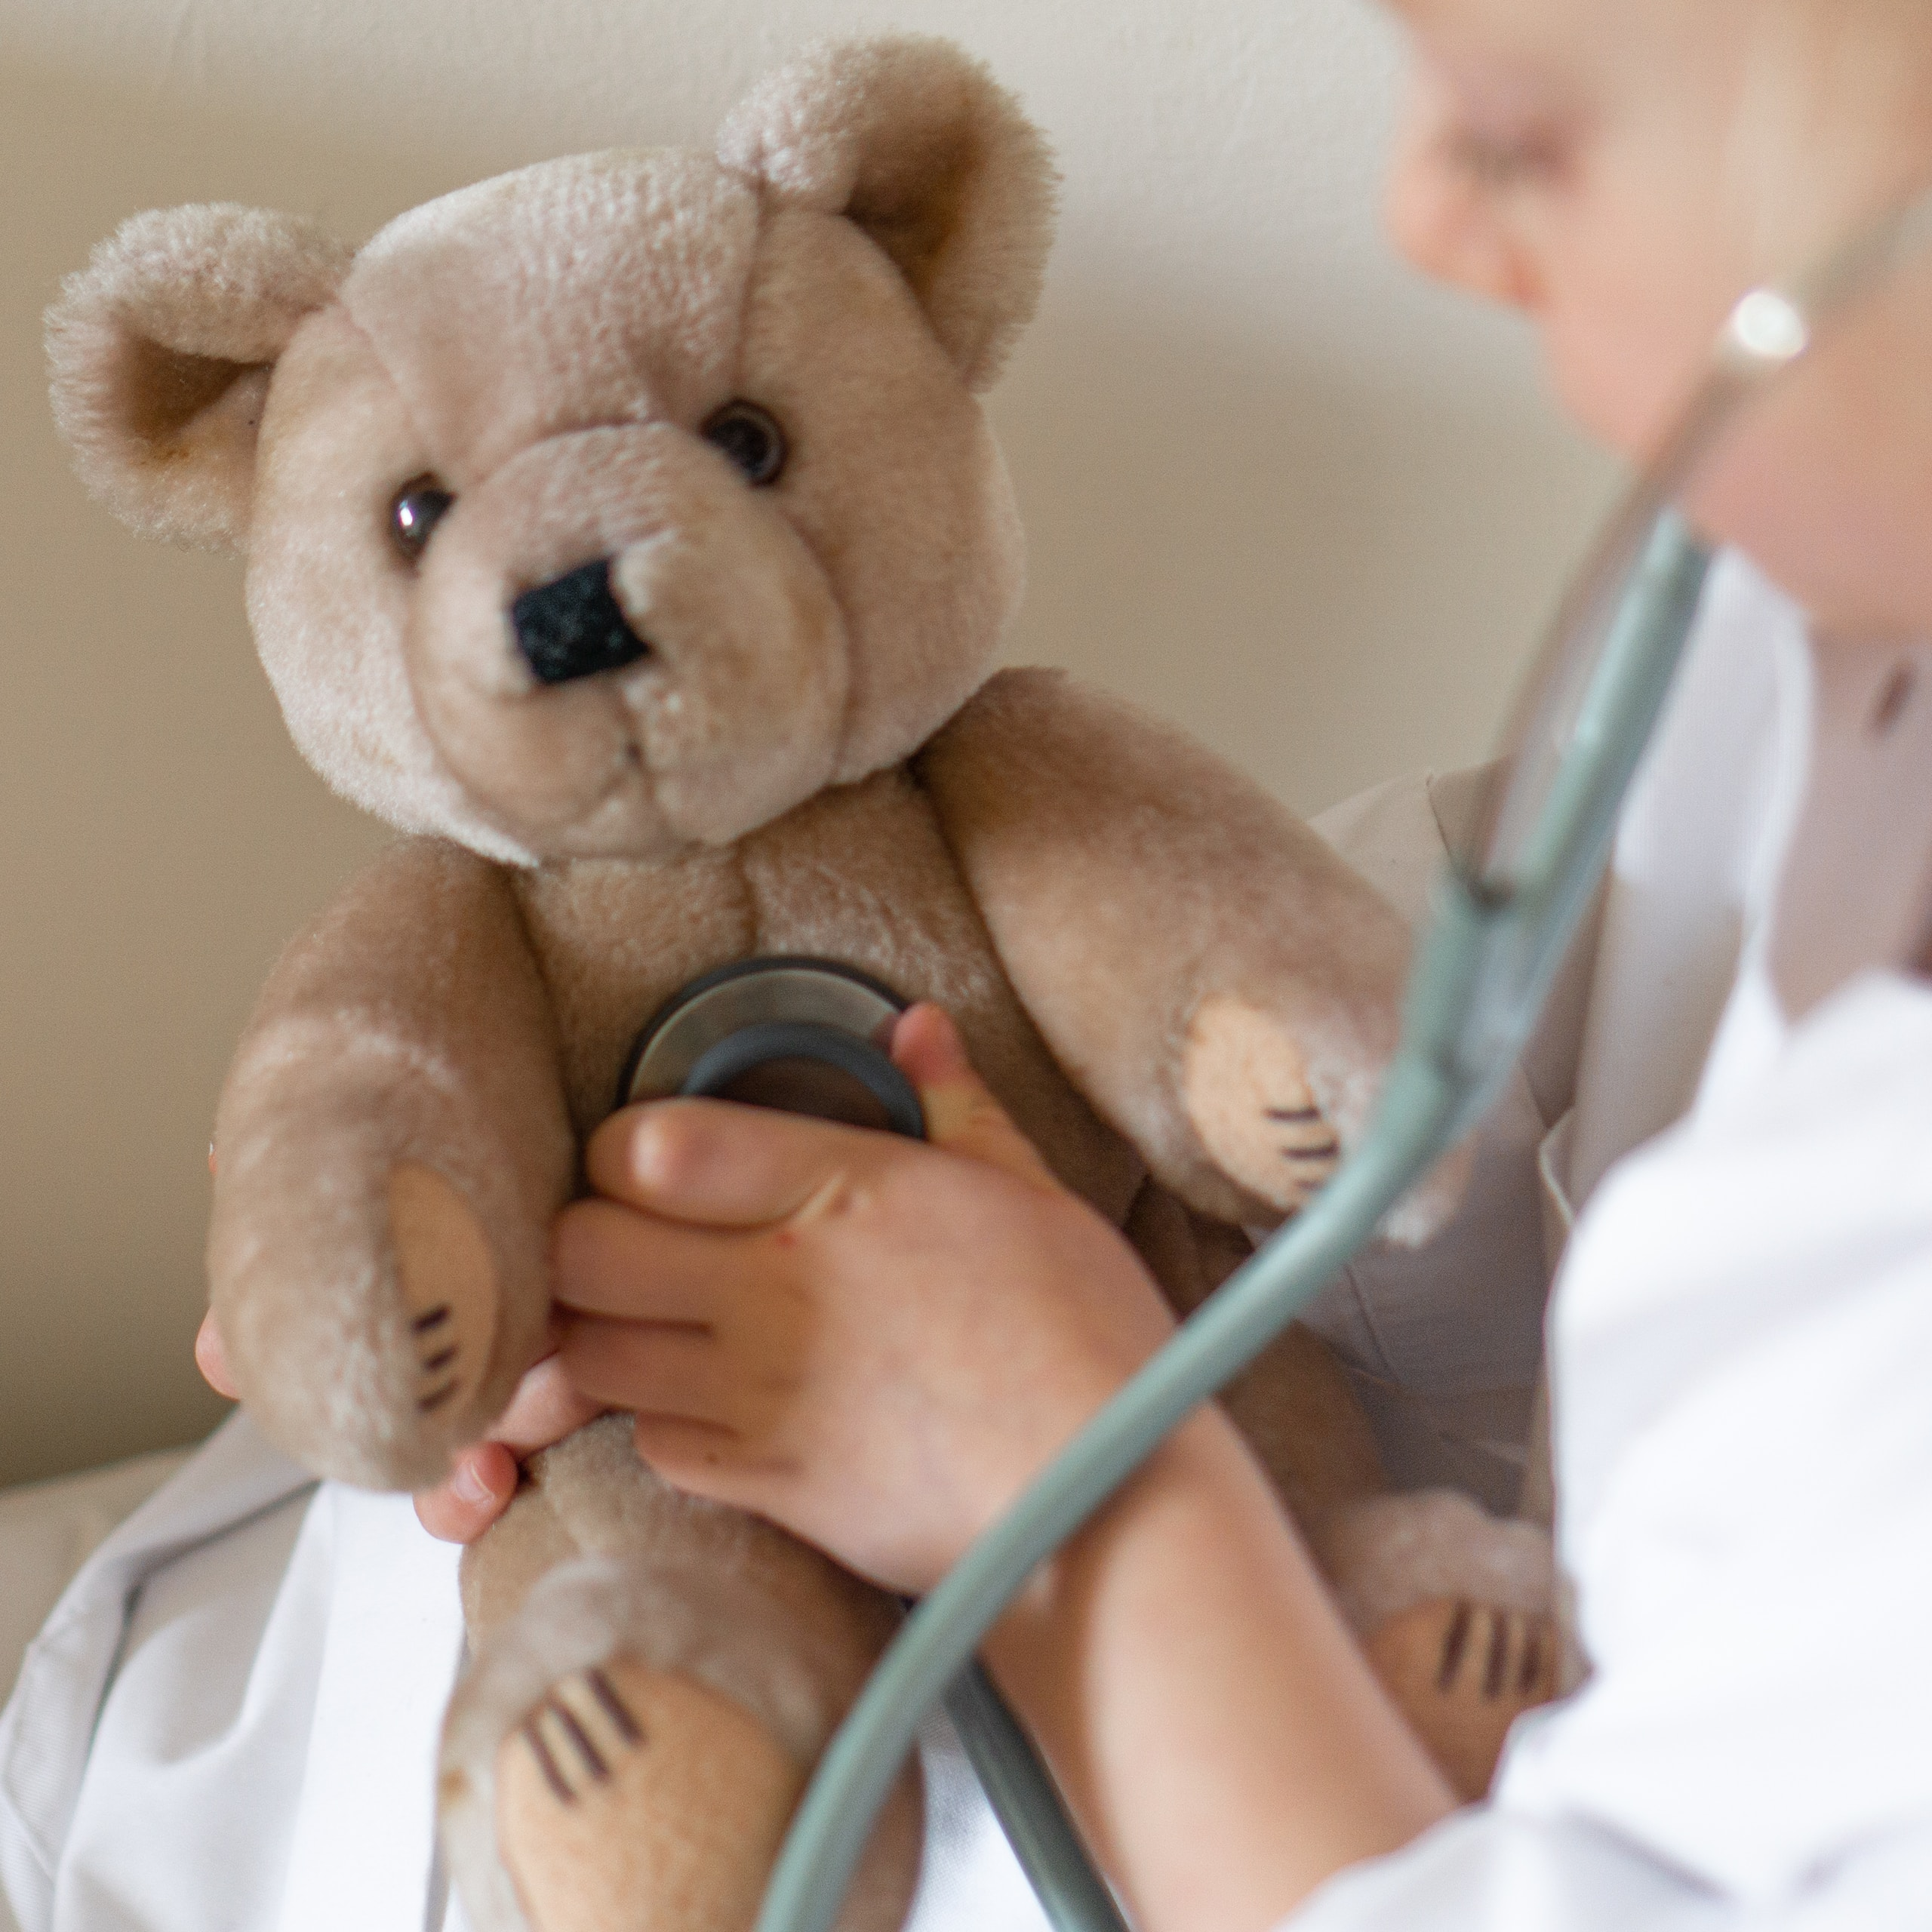 person holding brown bear plush toy